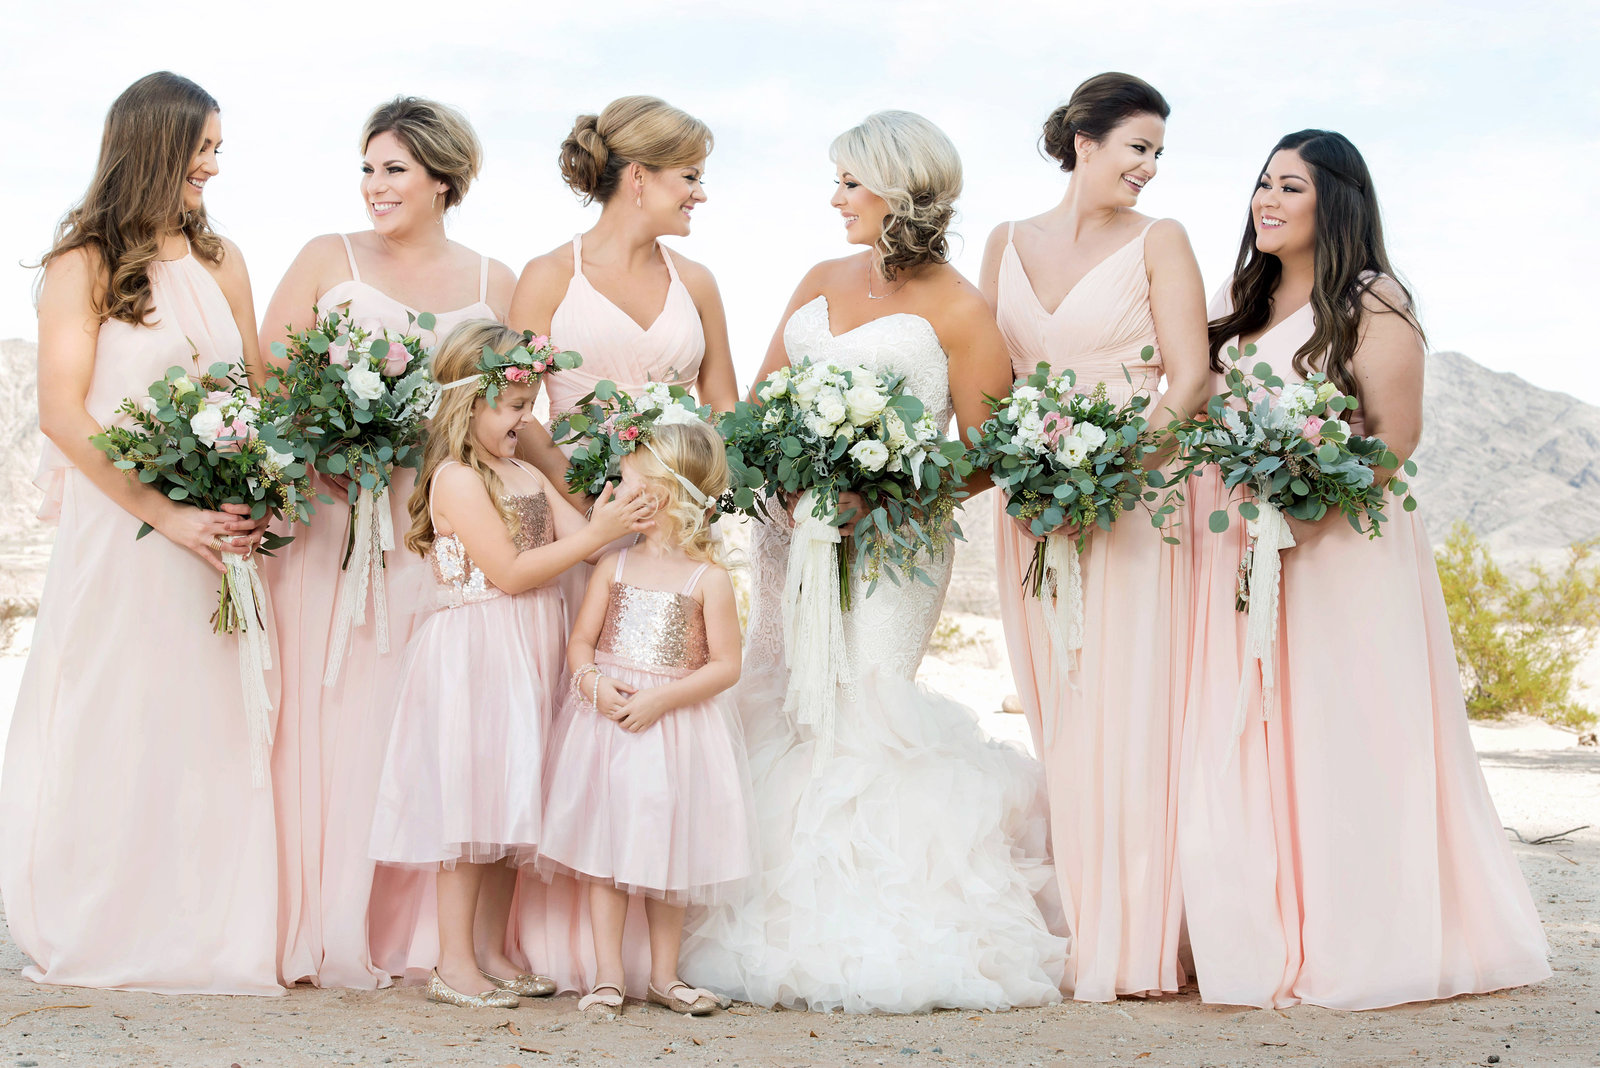 bride with bridesmaids standing in the desert